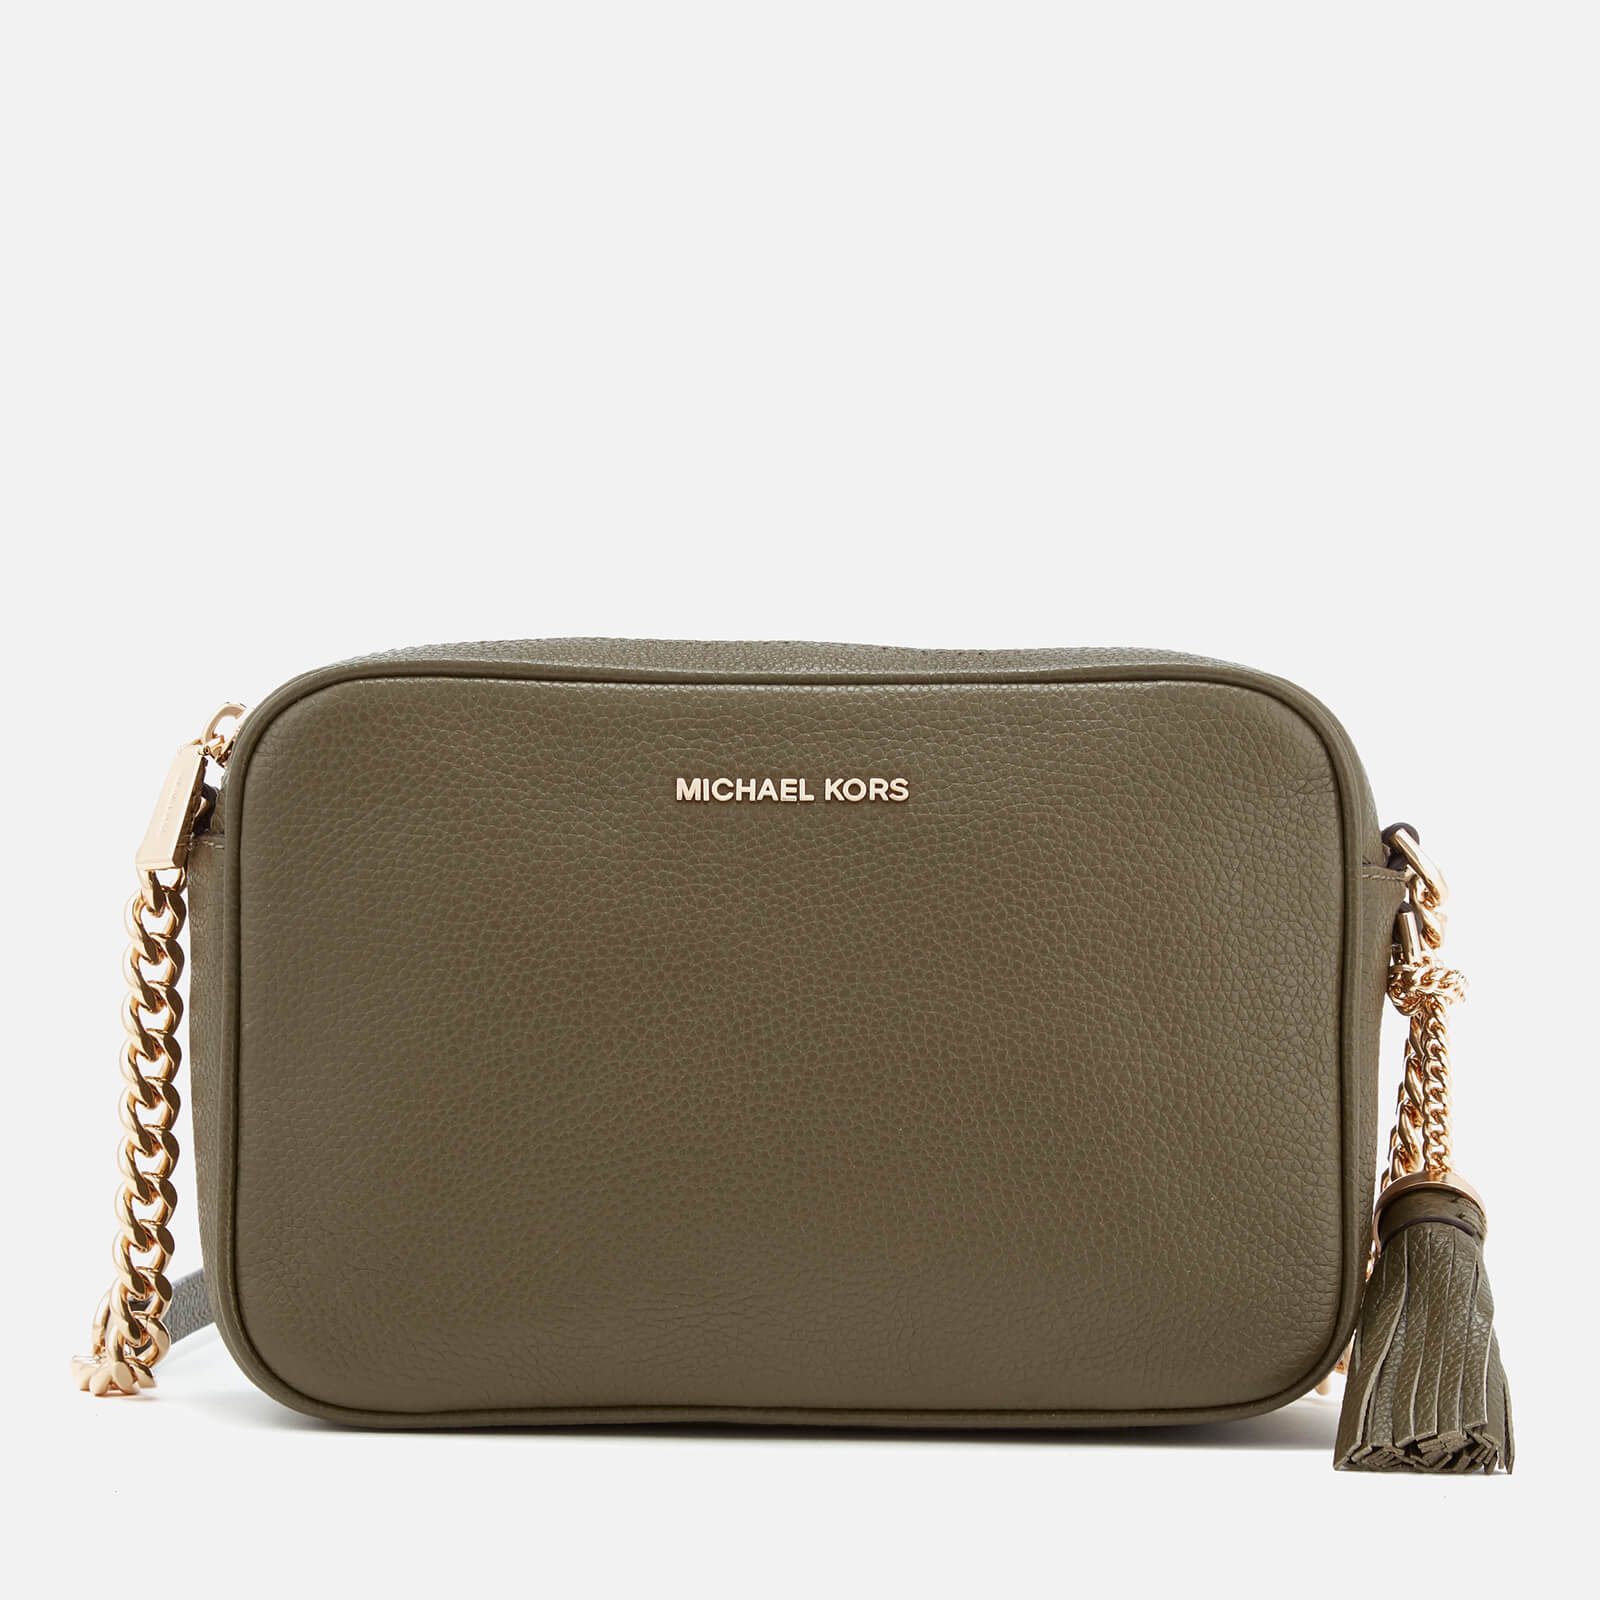 7f2adf353c6c MICHAEL MICHAEL KORS Women's Ginny Medium Camera Bag - Olive - Free UK  Delivery over £50